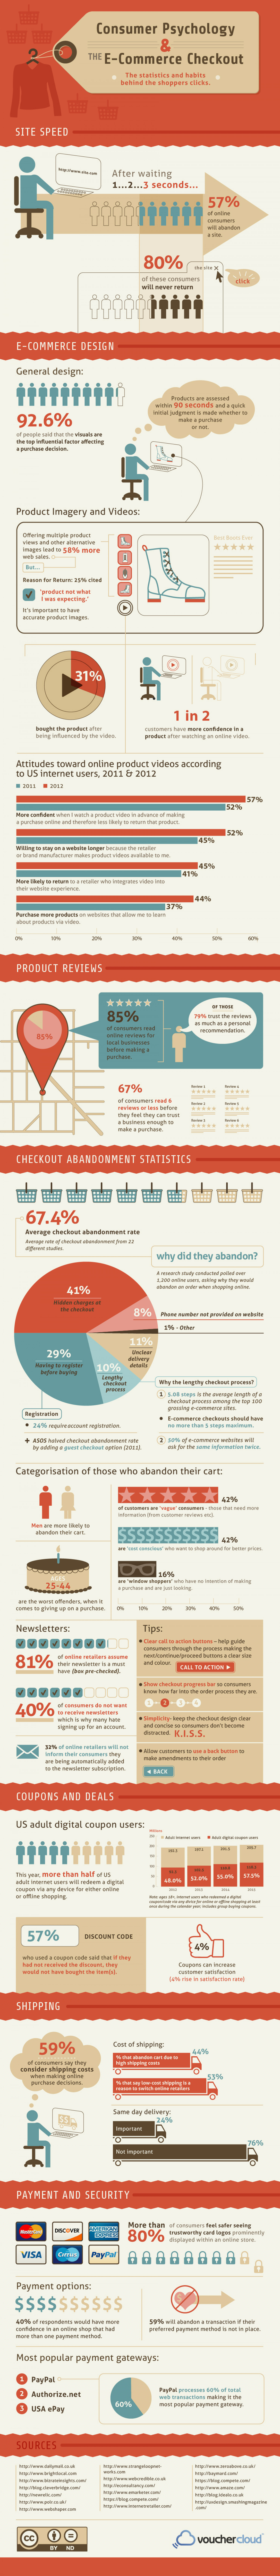 Consumer Psychology and the E-Commerce Checkout Infographic